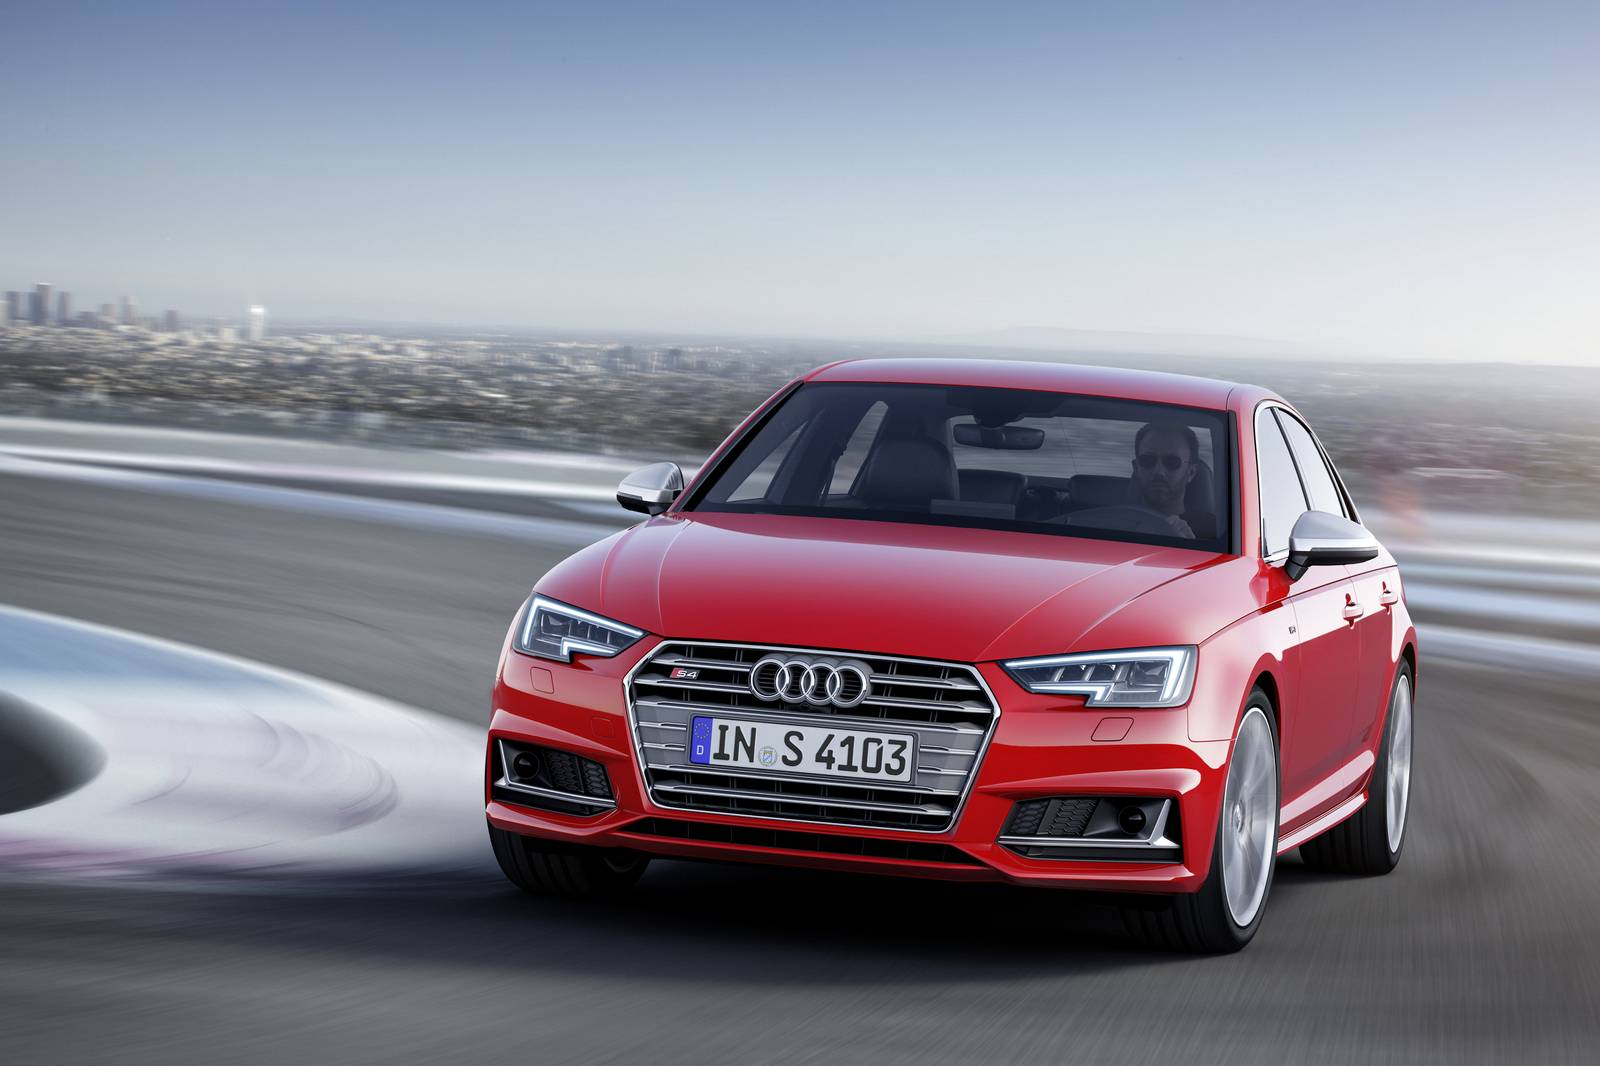 Audi S4 0-60 >> No DSG And Supercharger: 2016 Audi S4 Goes Automatic And Turbocharged - Art of Gears